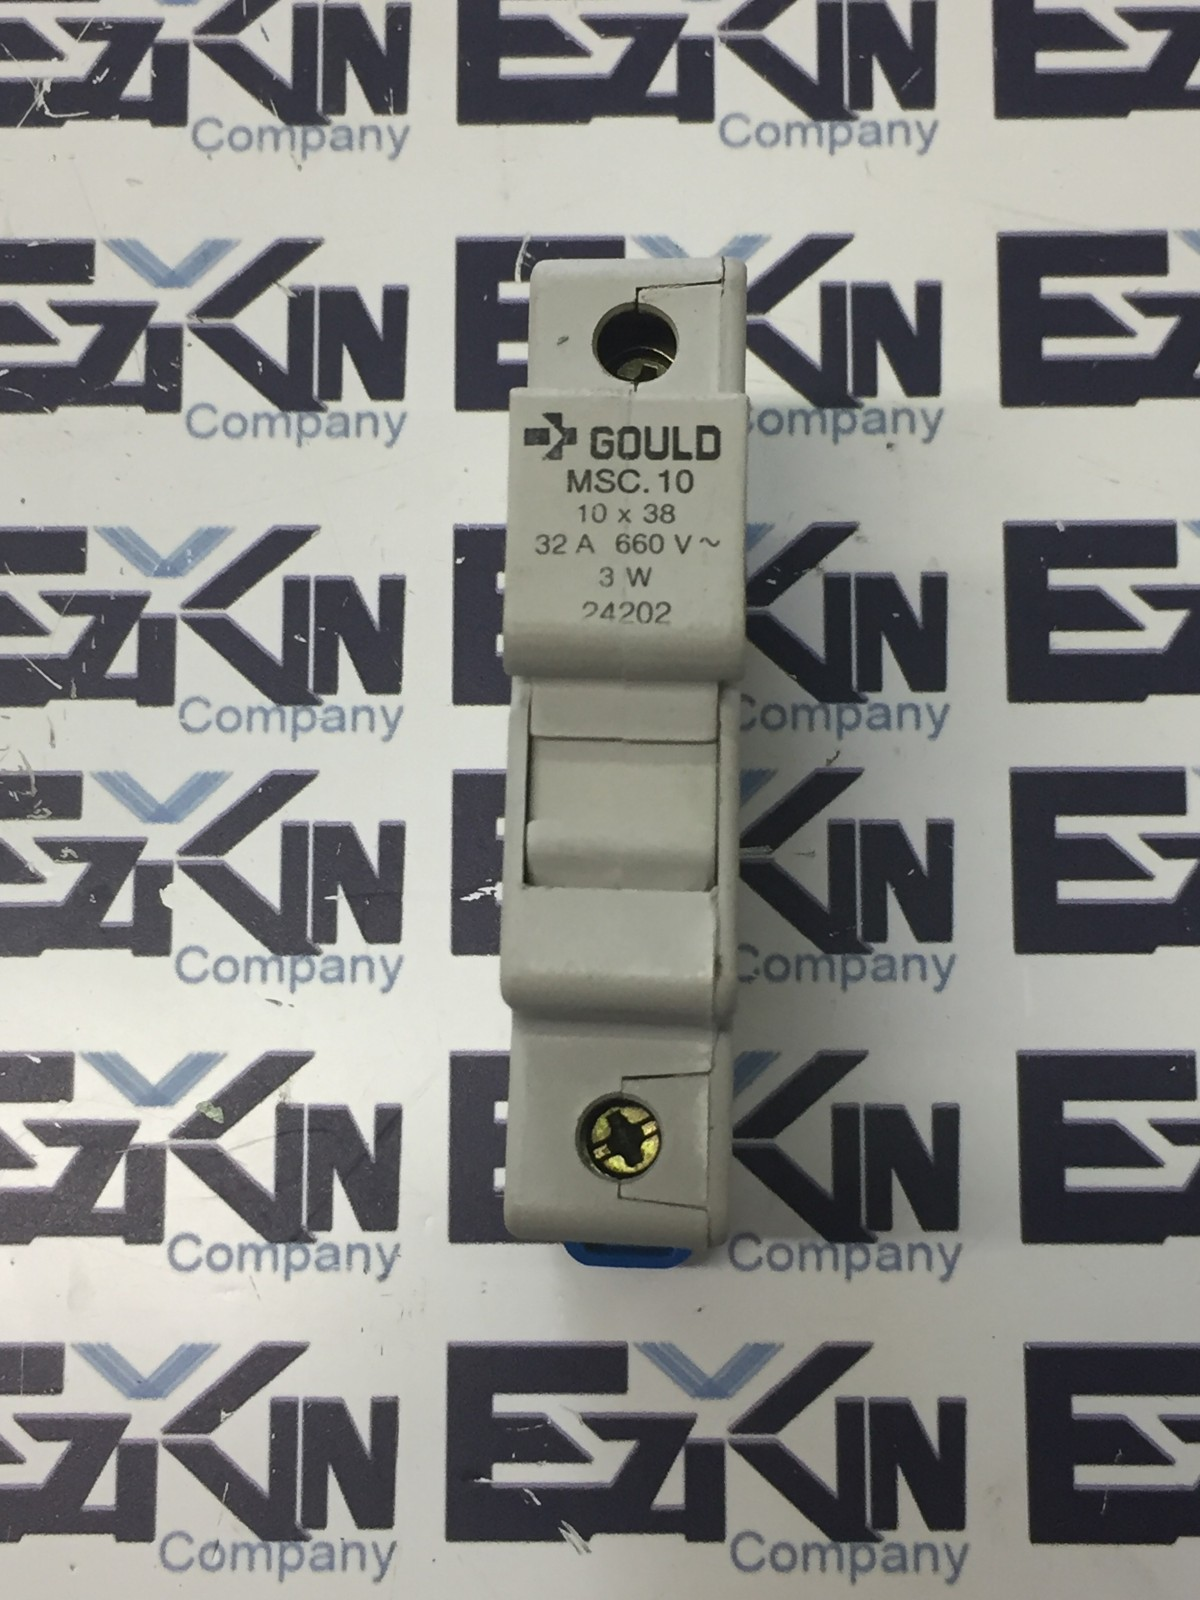 Gould MSC.10 10 x 38 24202 Dual Fuse Holder